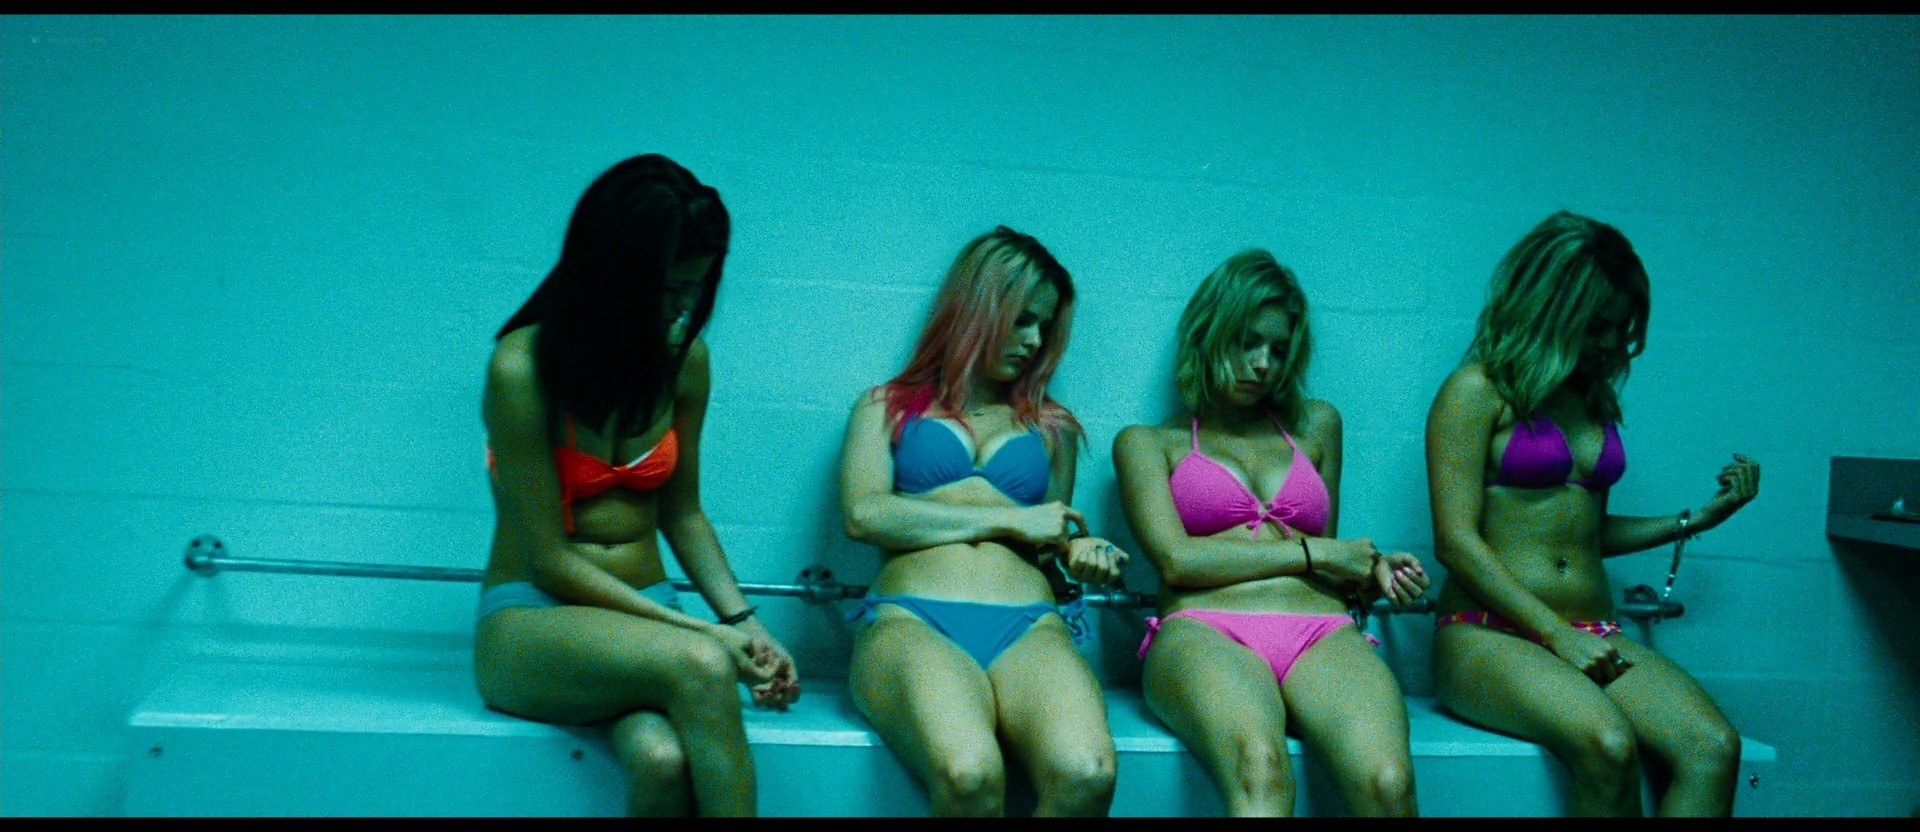 Ashley Benson nude skinny dipping others nude too - Spring Breakers (2012) HD 1080p BluRay (11)